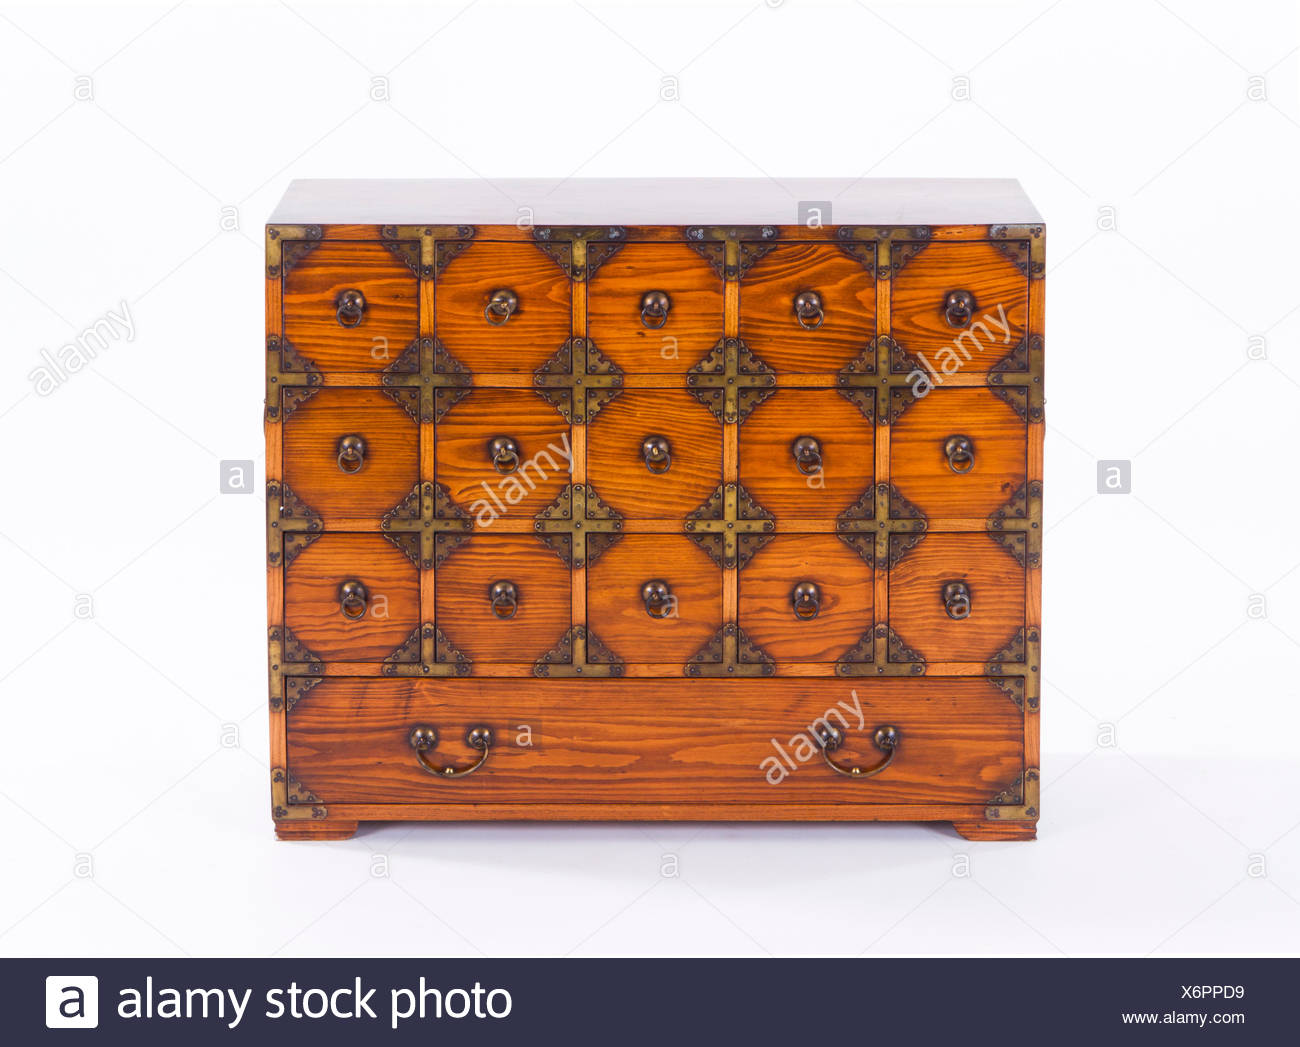 Merveilleux Chinese Cabinet   Stock Image